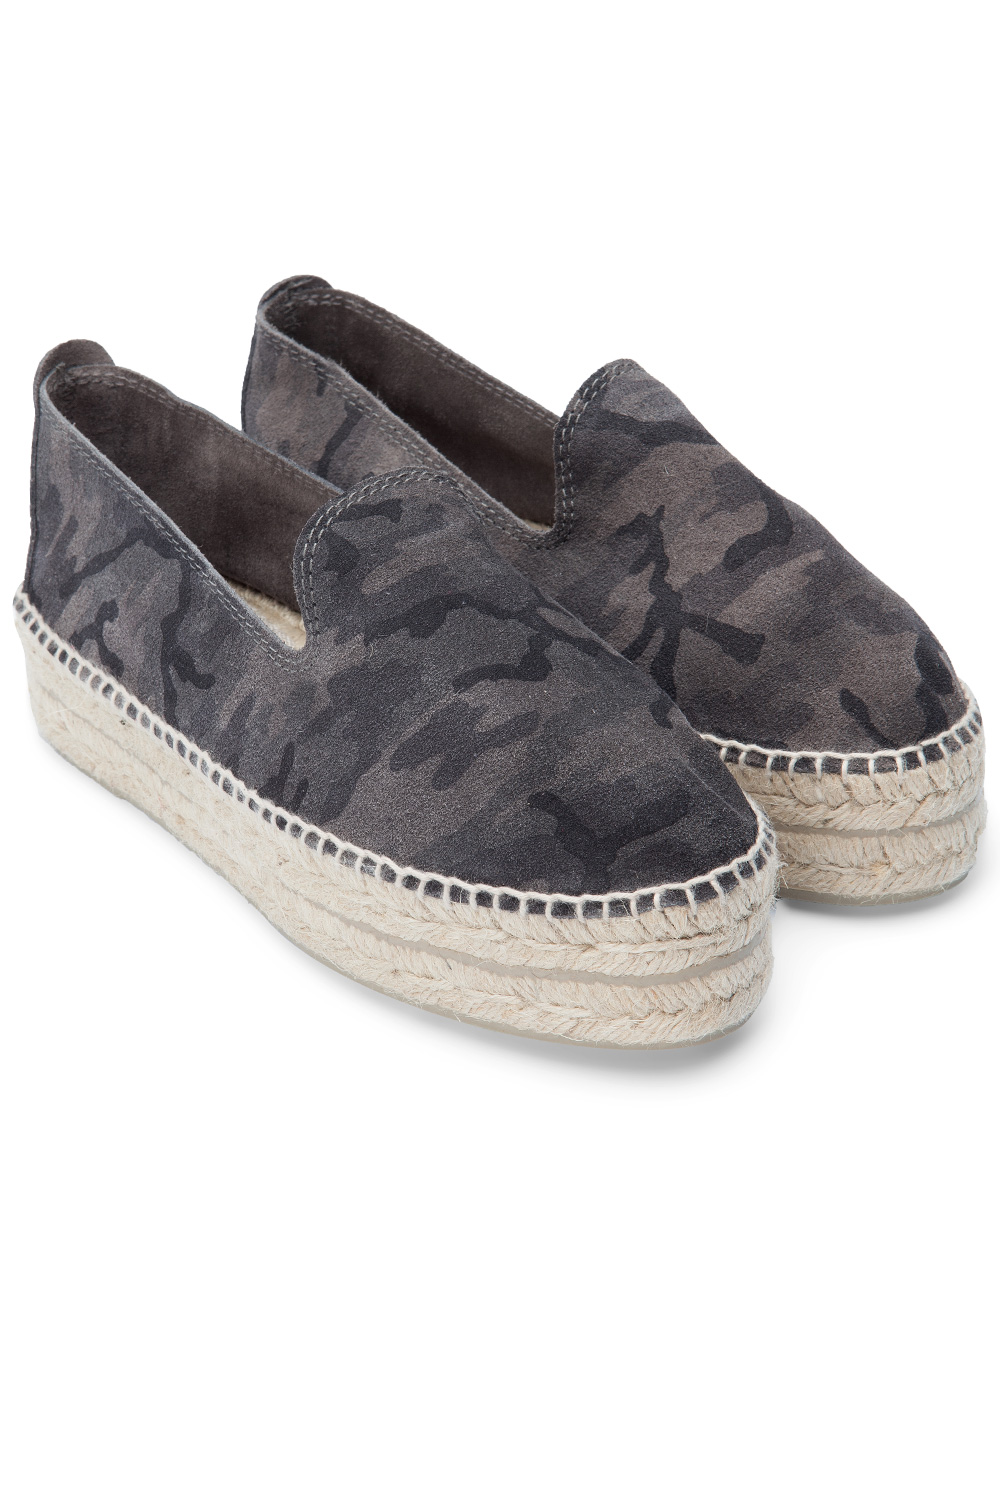 Dakar Camo Dark Jungle Süet Espadril